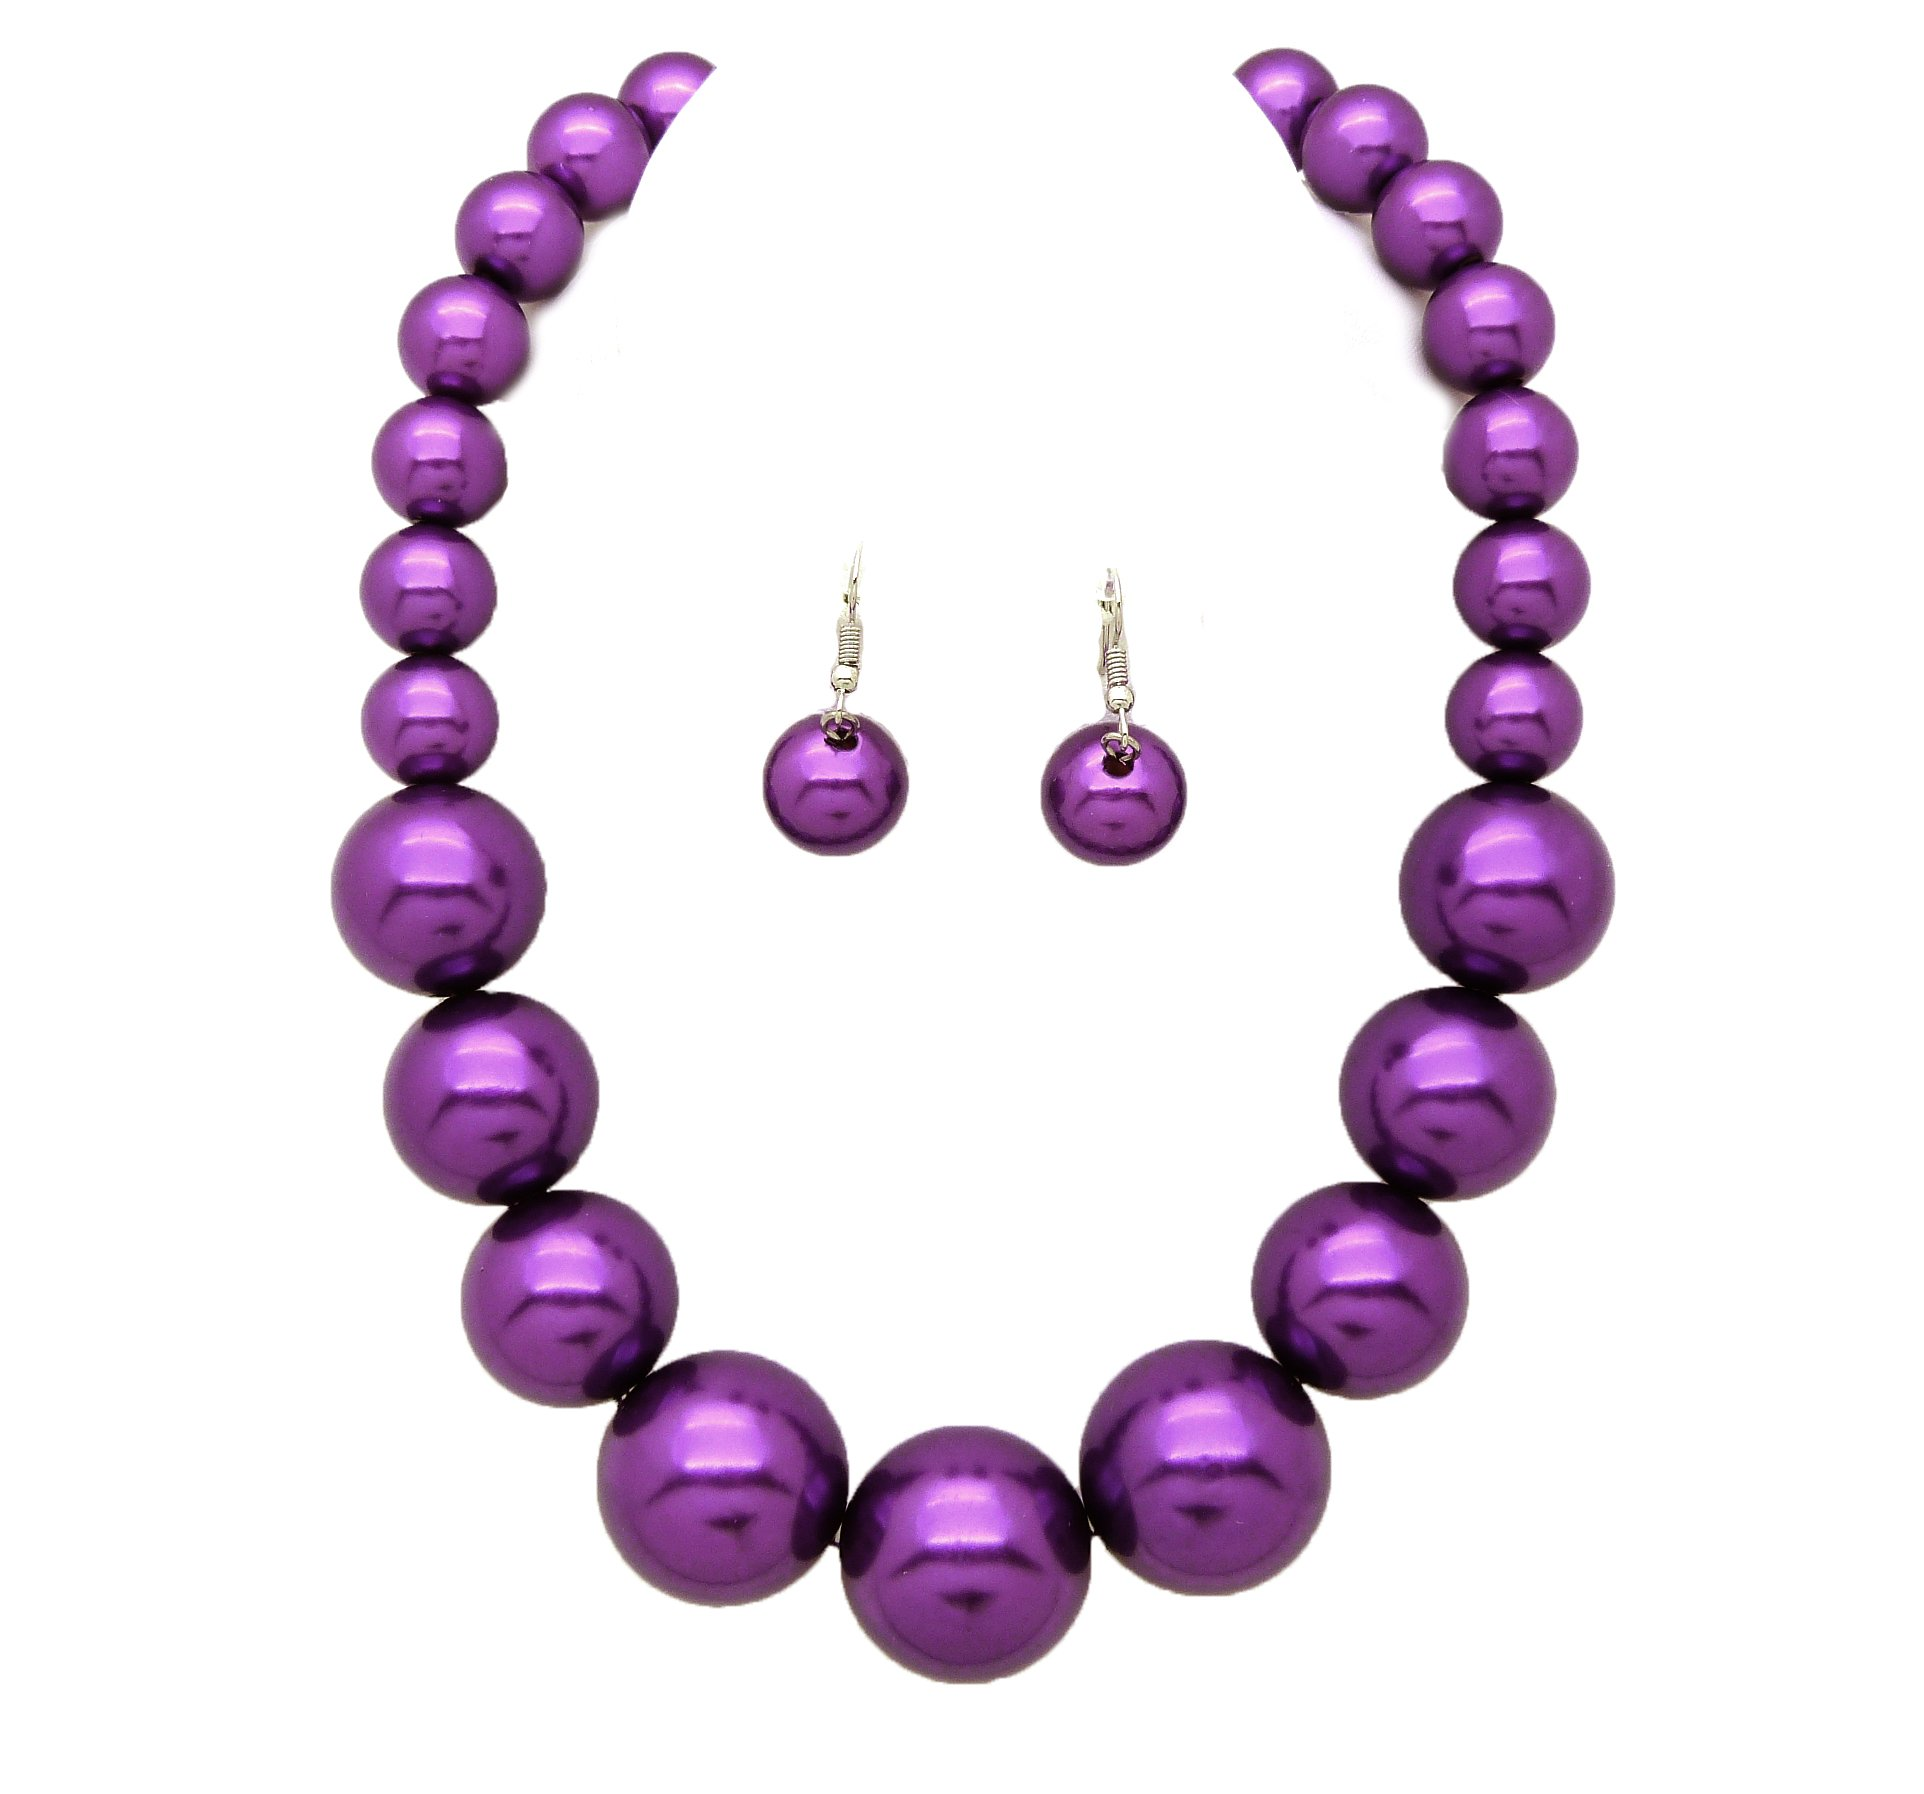 Fashion 21 Women's Large Big Simulated Pearl Statement 18'' Necklace and Earrings Set (Purple)